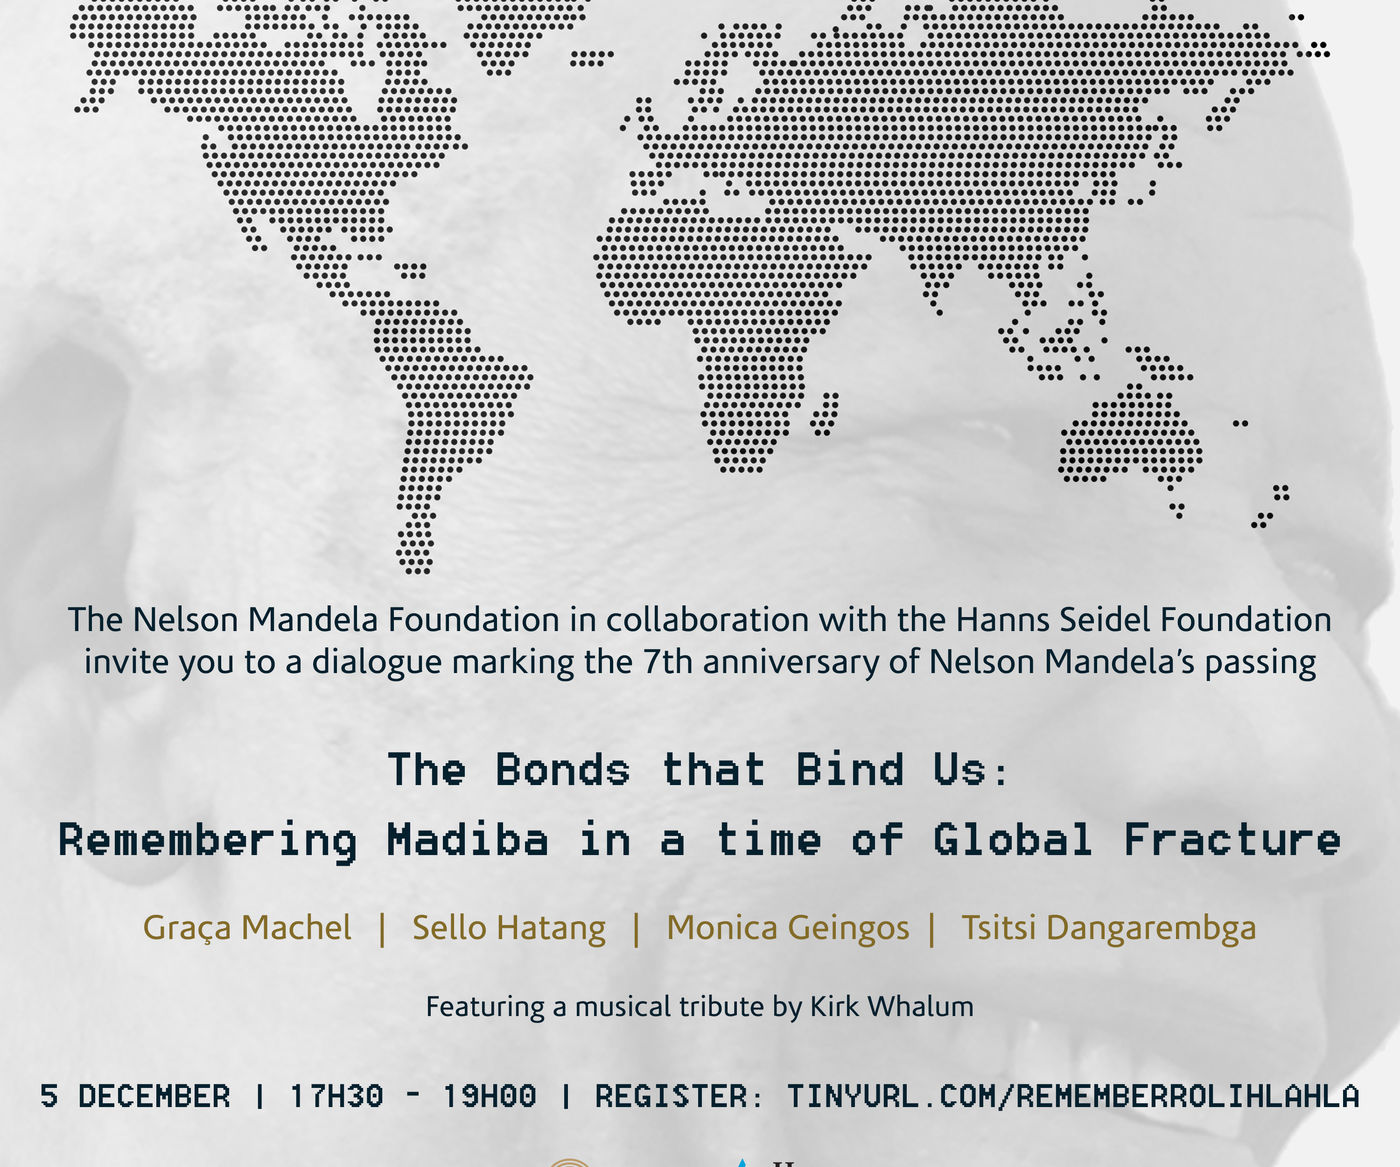 The Bonds That Bind Us dialogue invitation